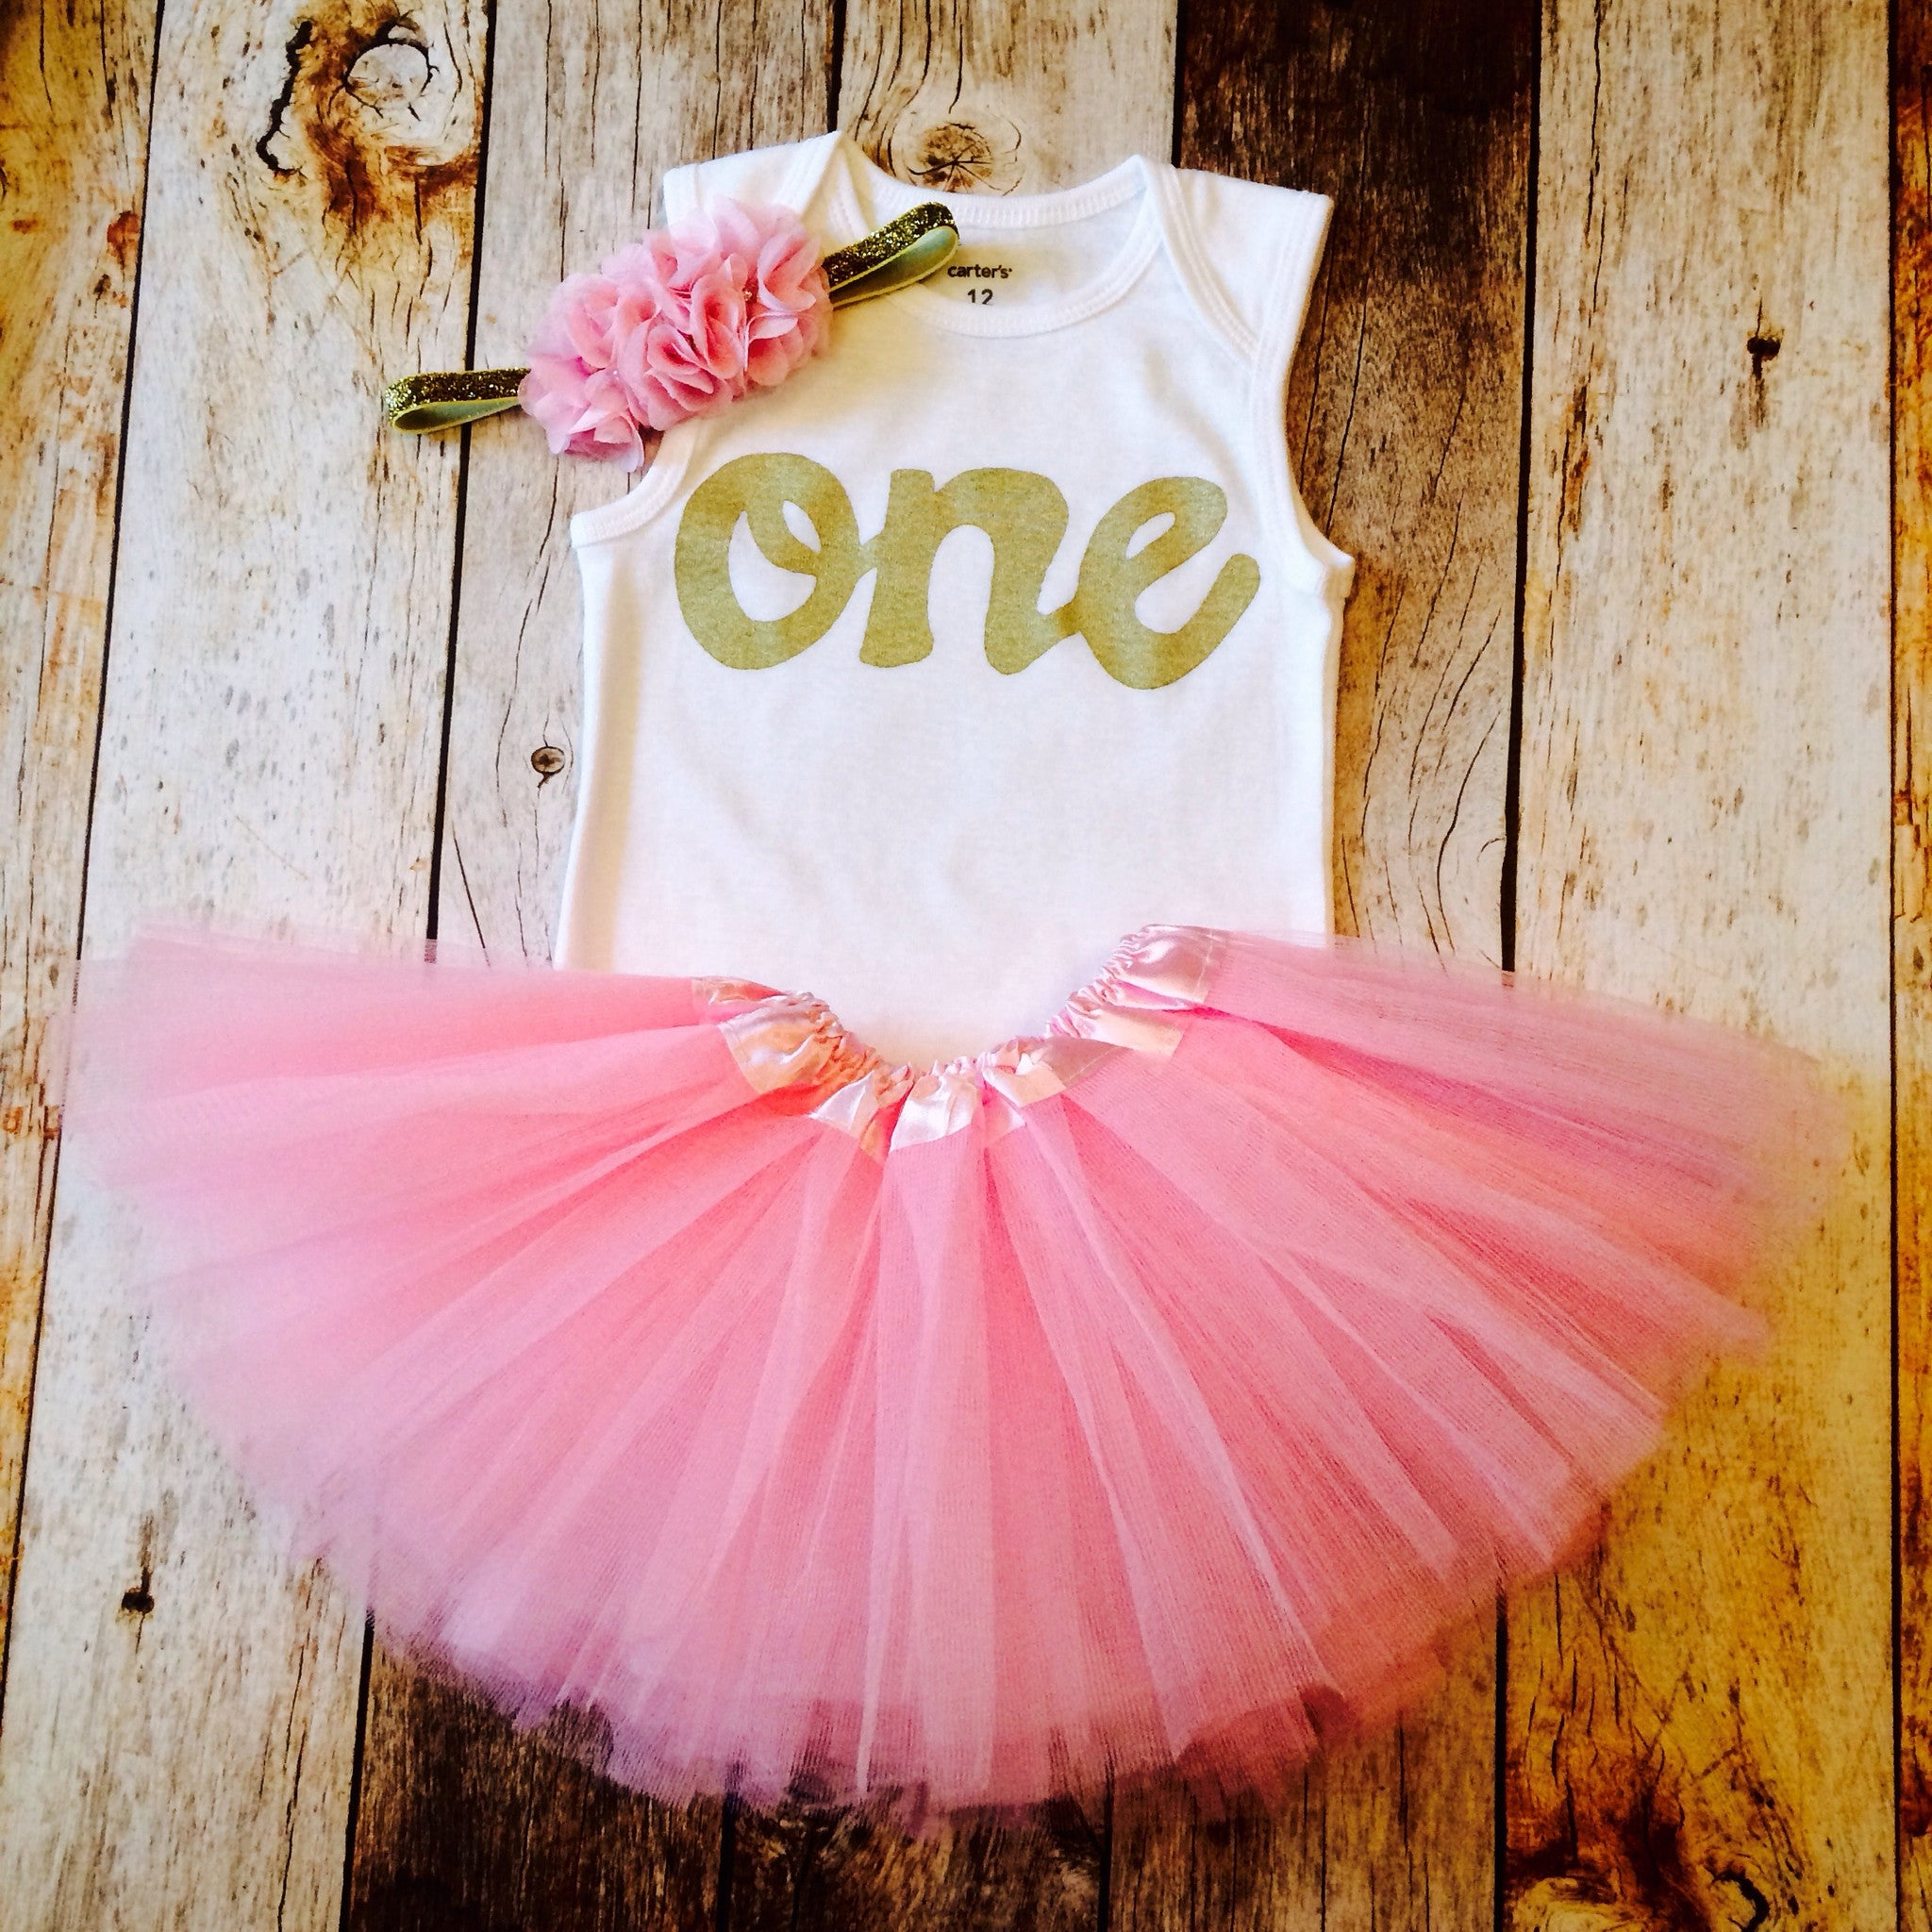 caab4ffa2 Petal pink tutu set, girls 1st birthay outfit, tank top gold one onesie,  pink and gold 1st Birthday outfit, girls first birthday outfit.